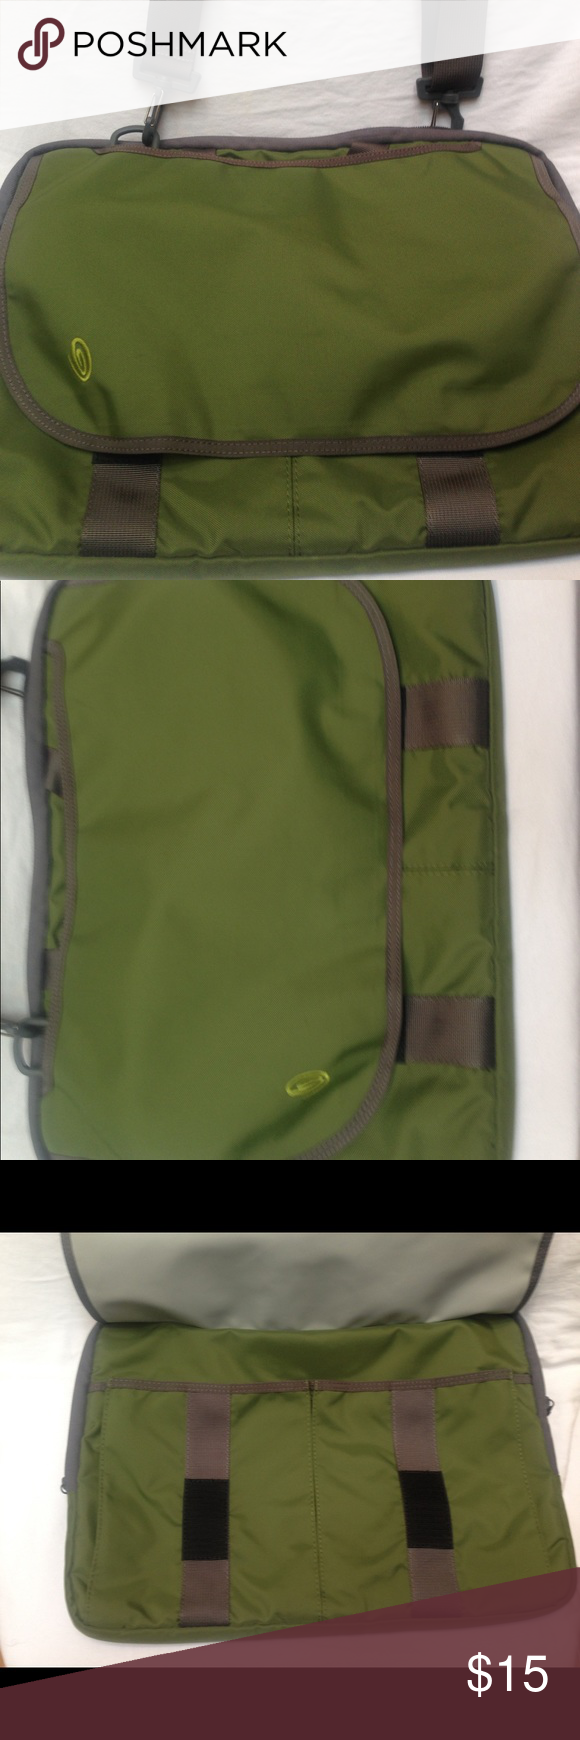 Timbuk2 Laptop Cover In good condition. All offers welcome :) Bags Laptop Bags